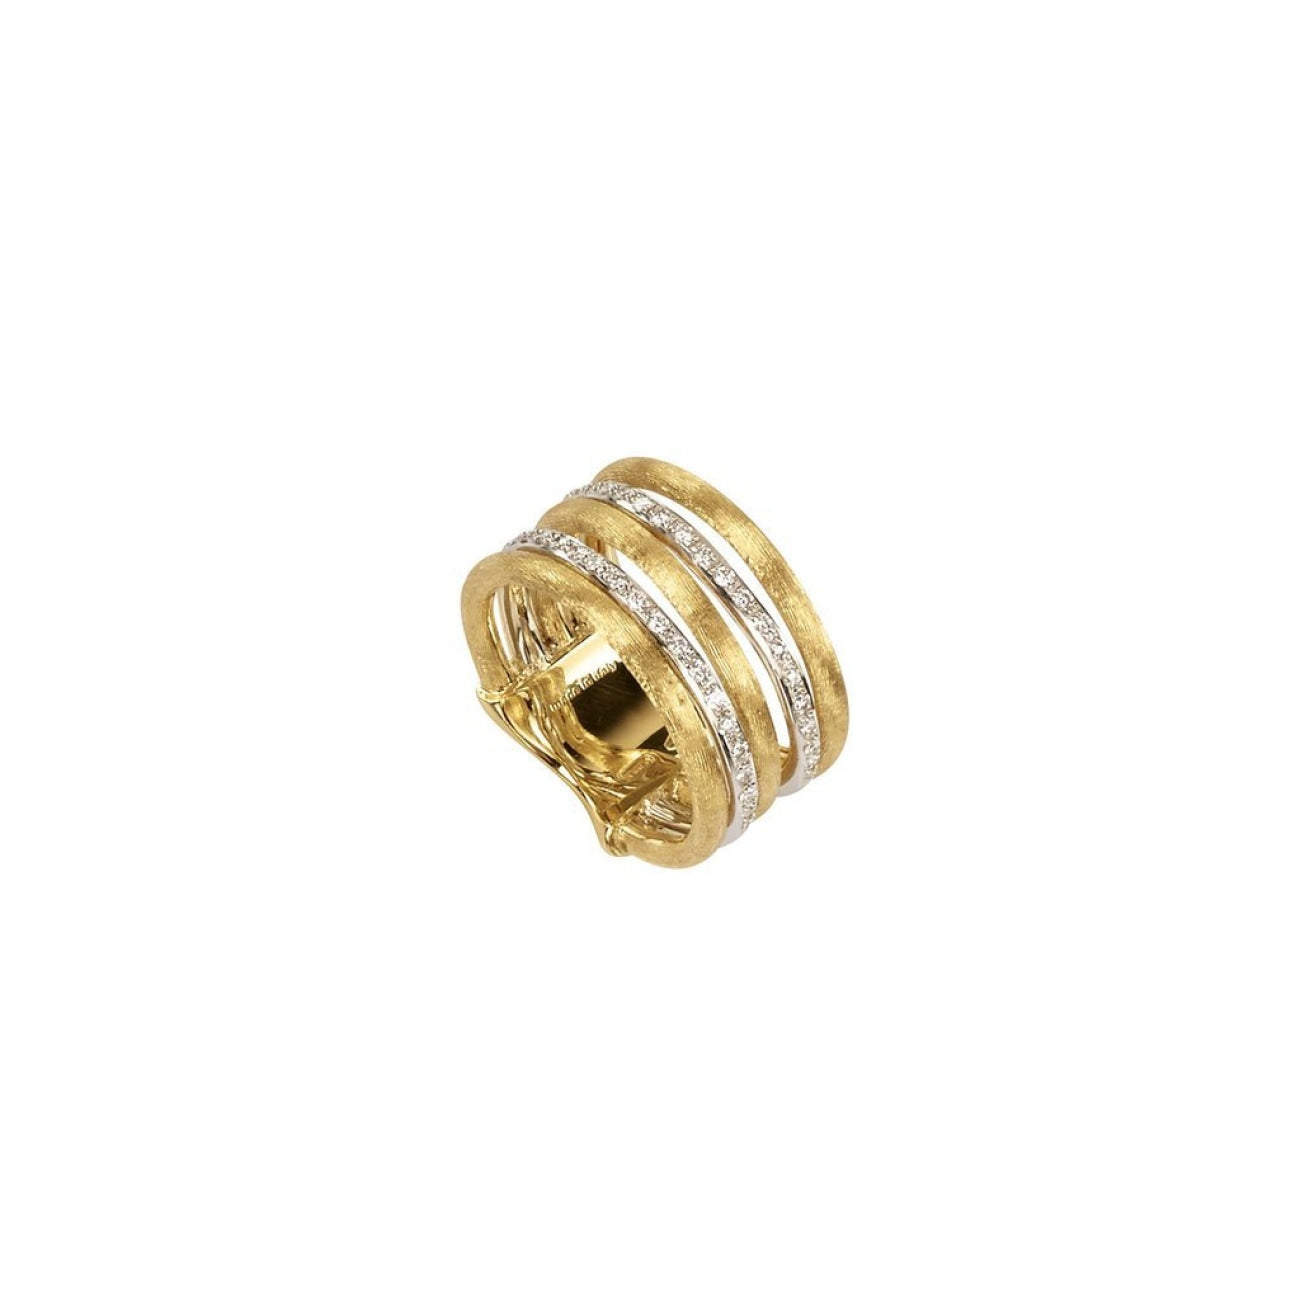 Marco Bicego Jewelry - 18K Yellow Gold Diamond Ring-JAIPUR LINK D | Manfredi Jewels